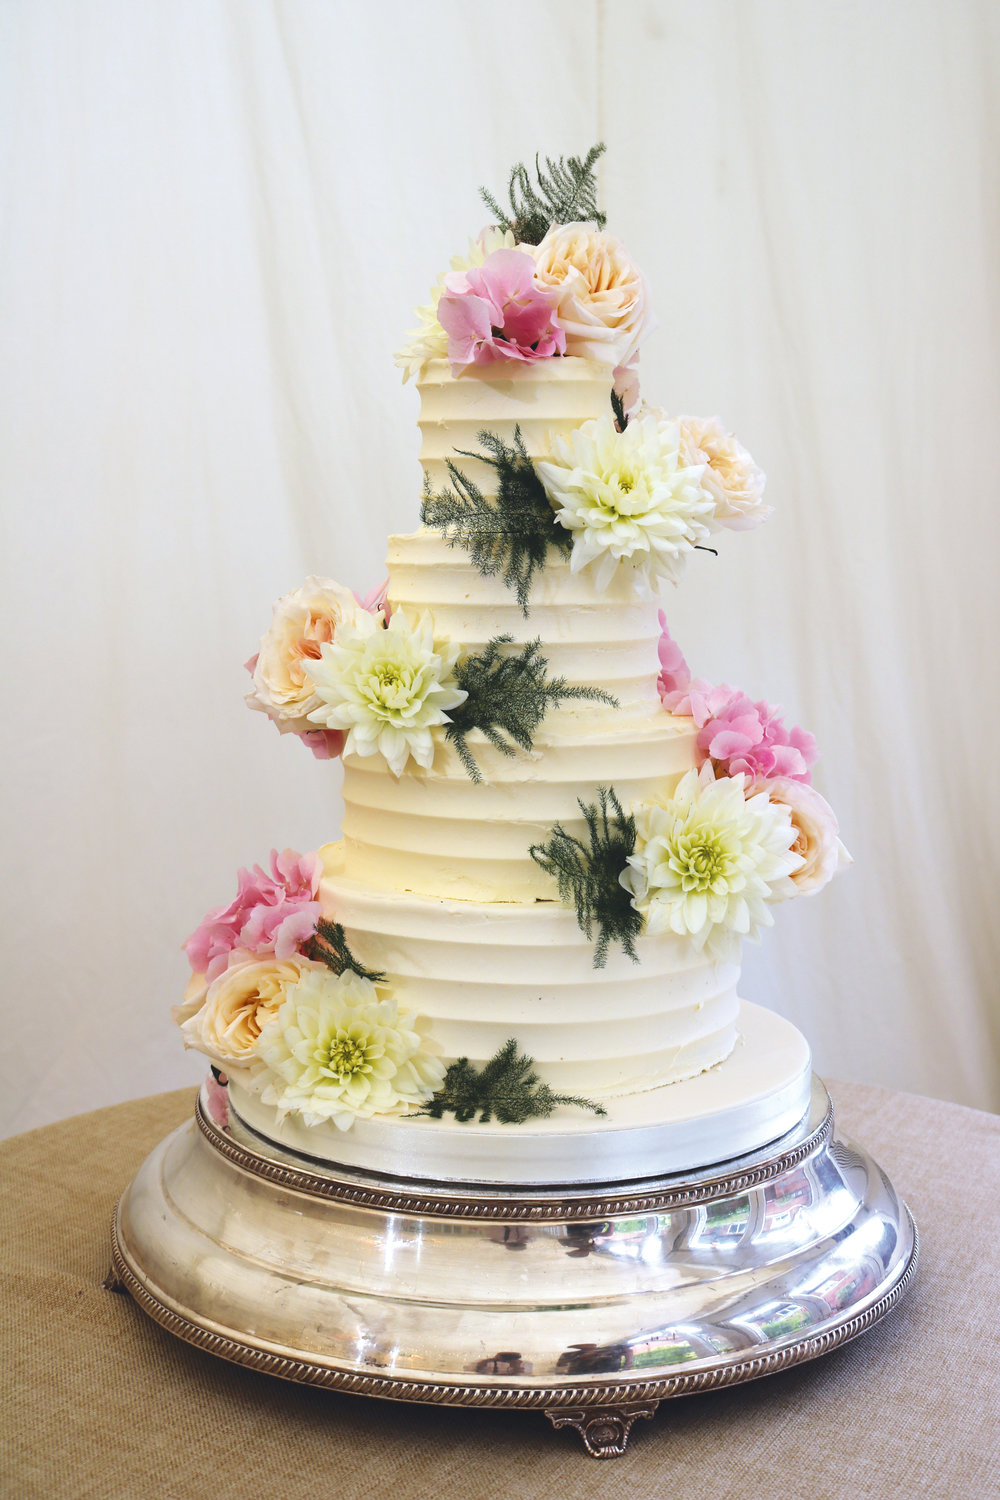 Buttercream covered wedding cake with a ridged or striped finish for a rustic look that's great on a budget! Shown here at Fulham Palace